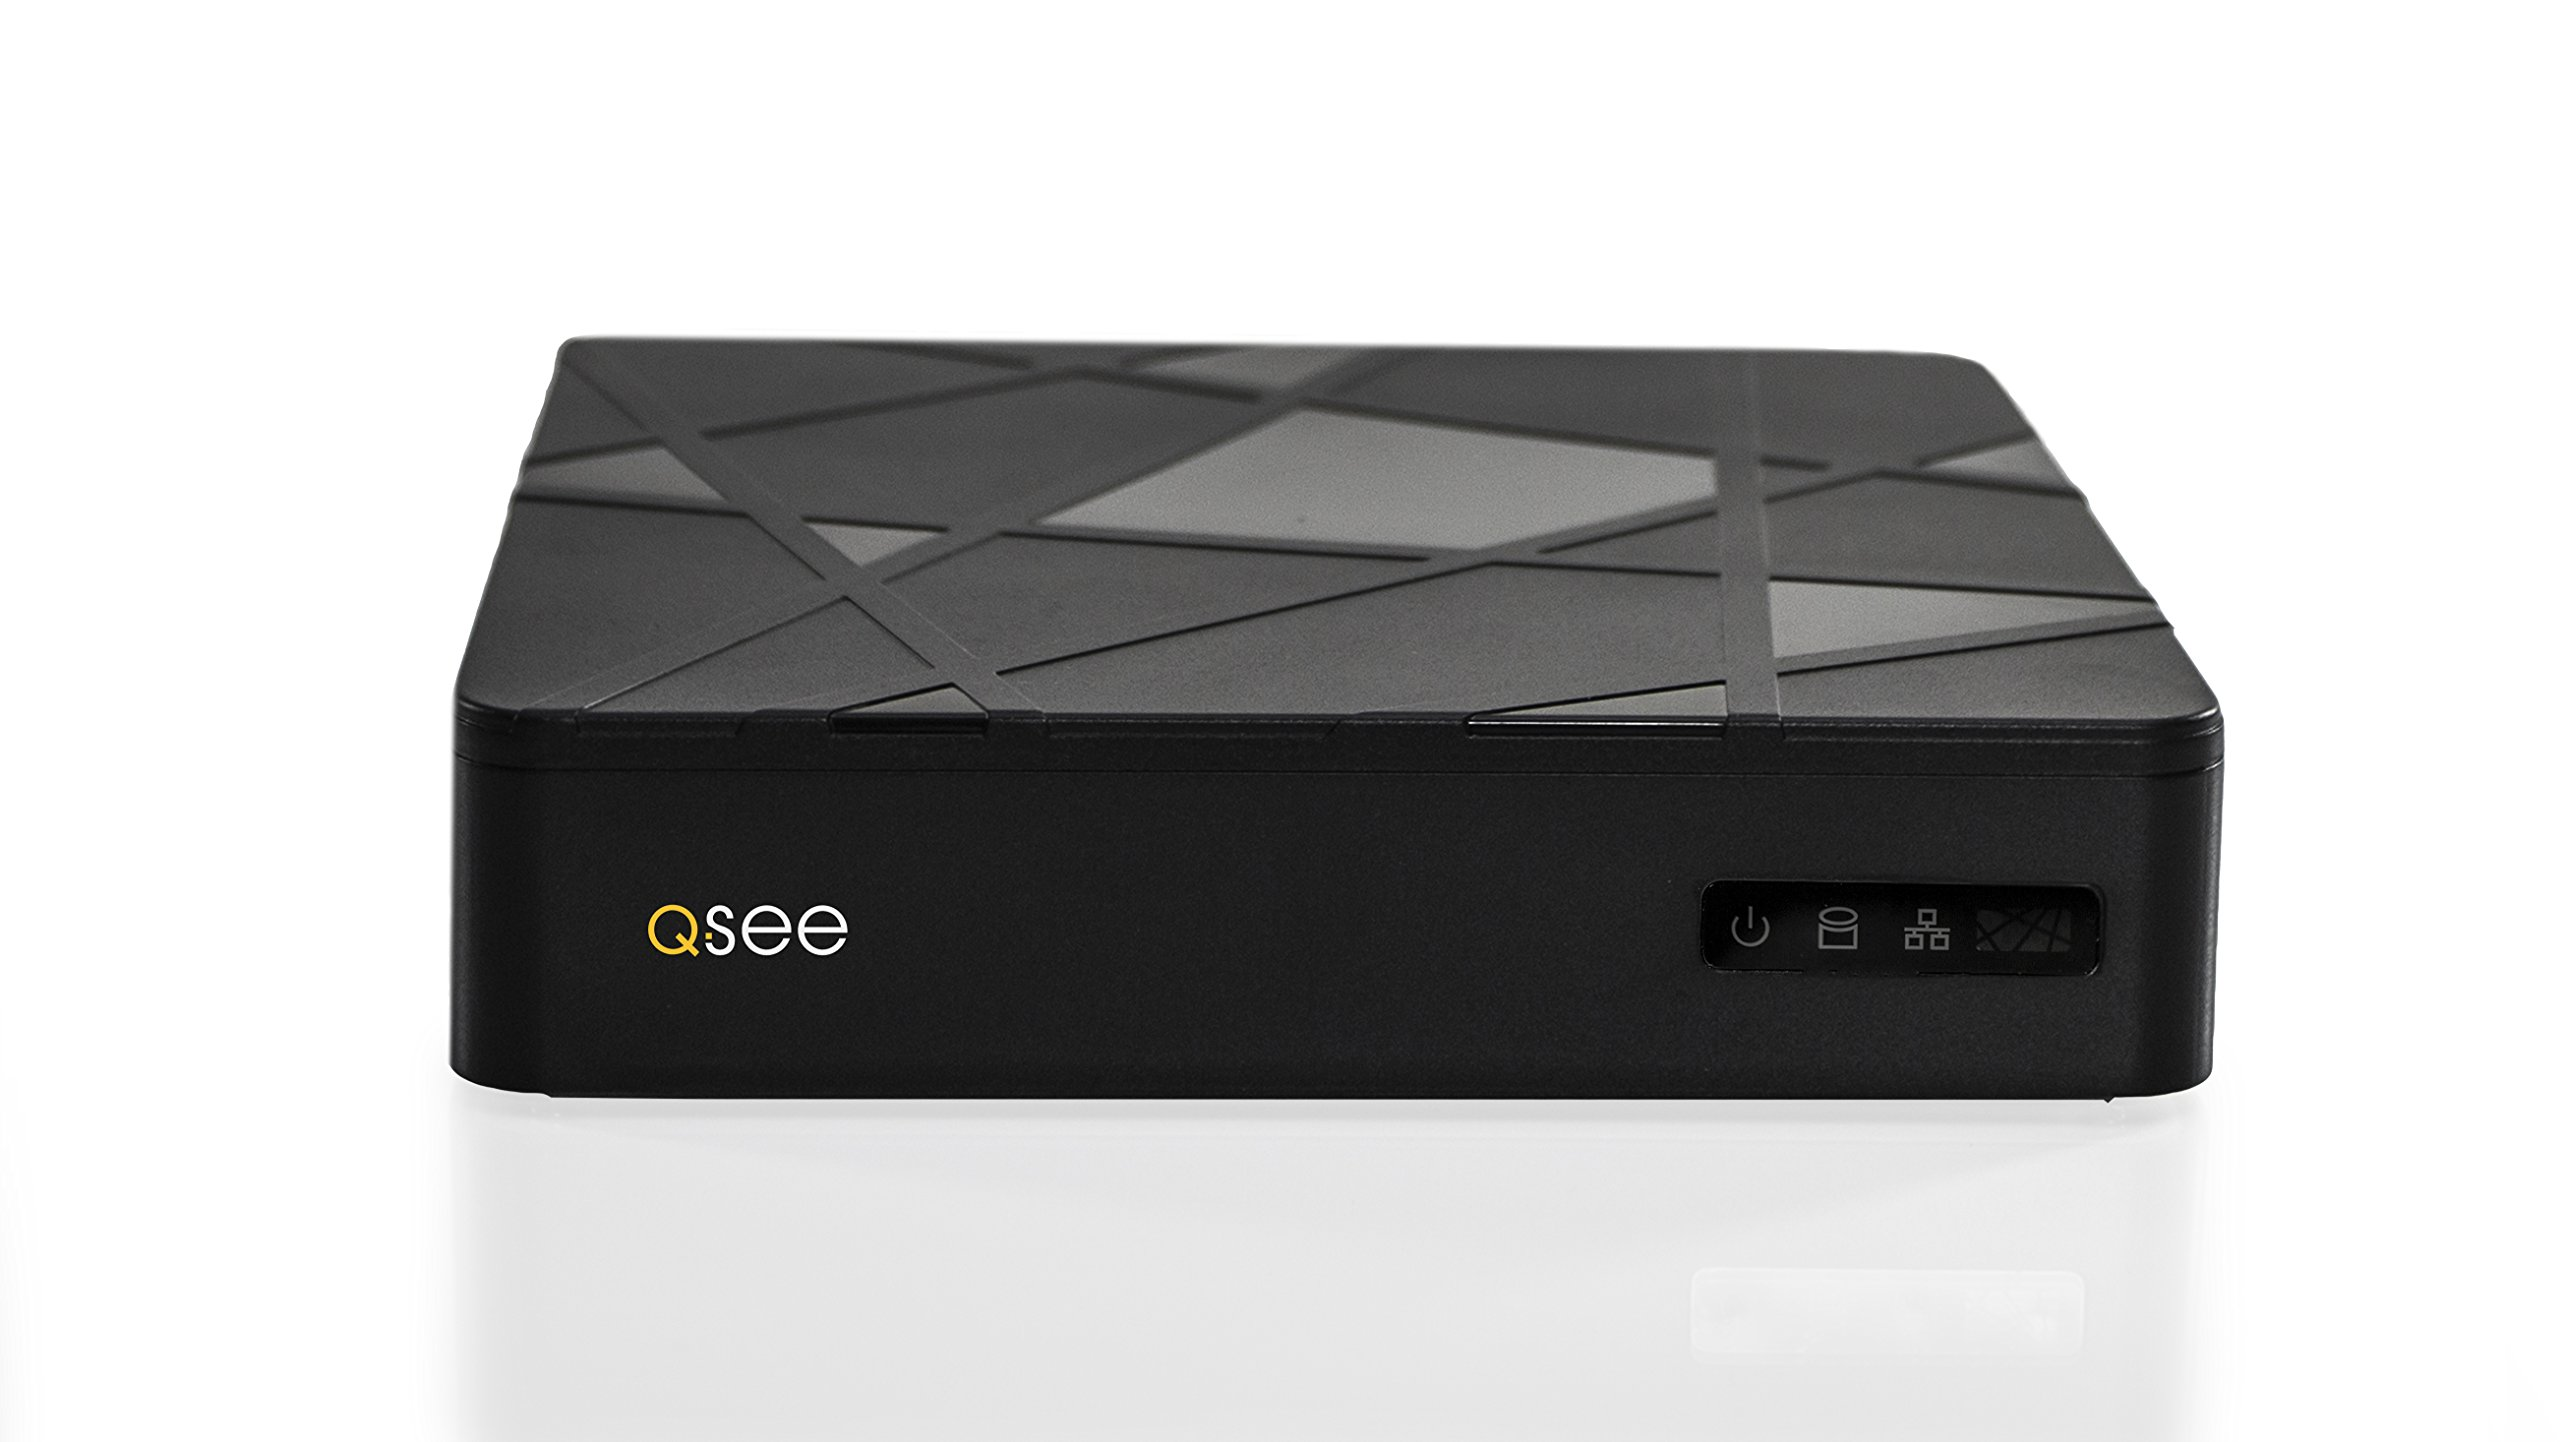 Q-See (Certified Refurbished) QT554-5R, 4-Channel 960H Analog DVR with 500 GB HDD